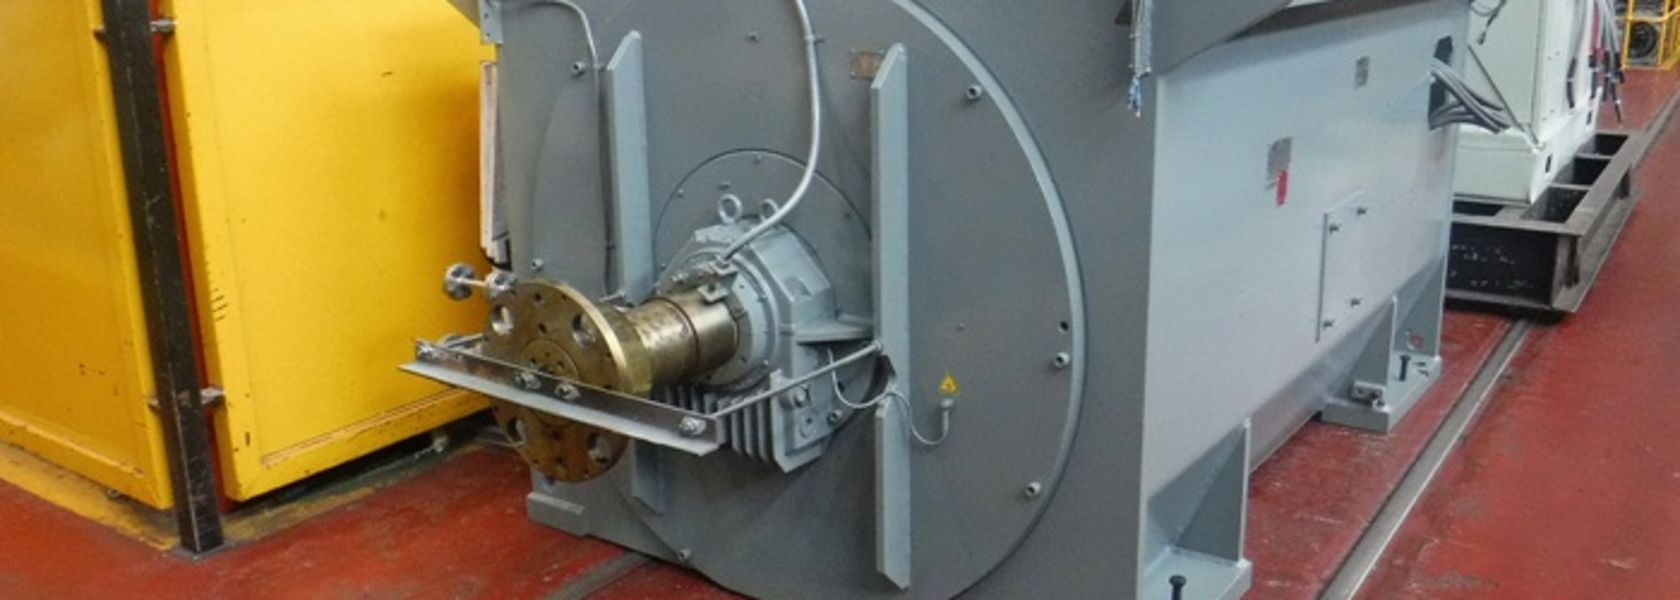 New motor for Zambian copper mine